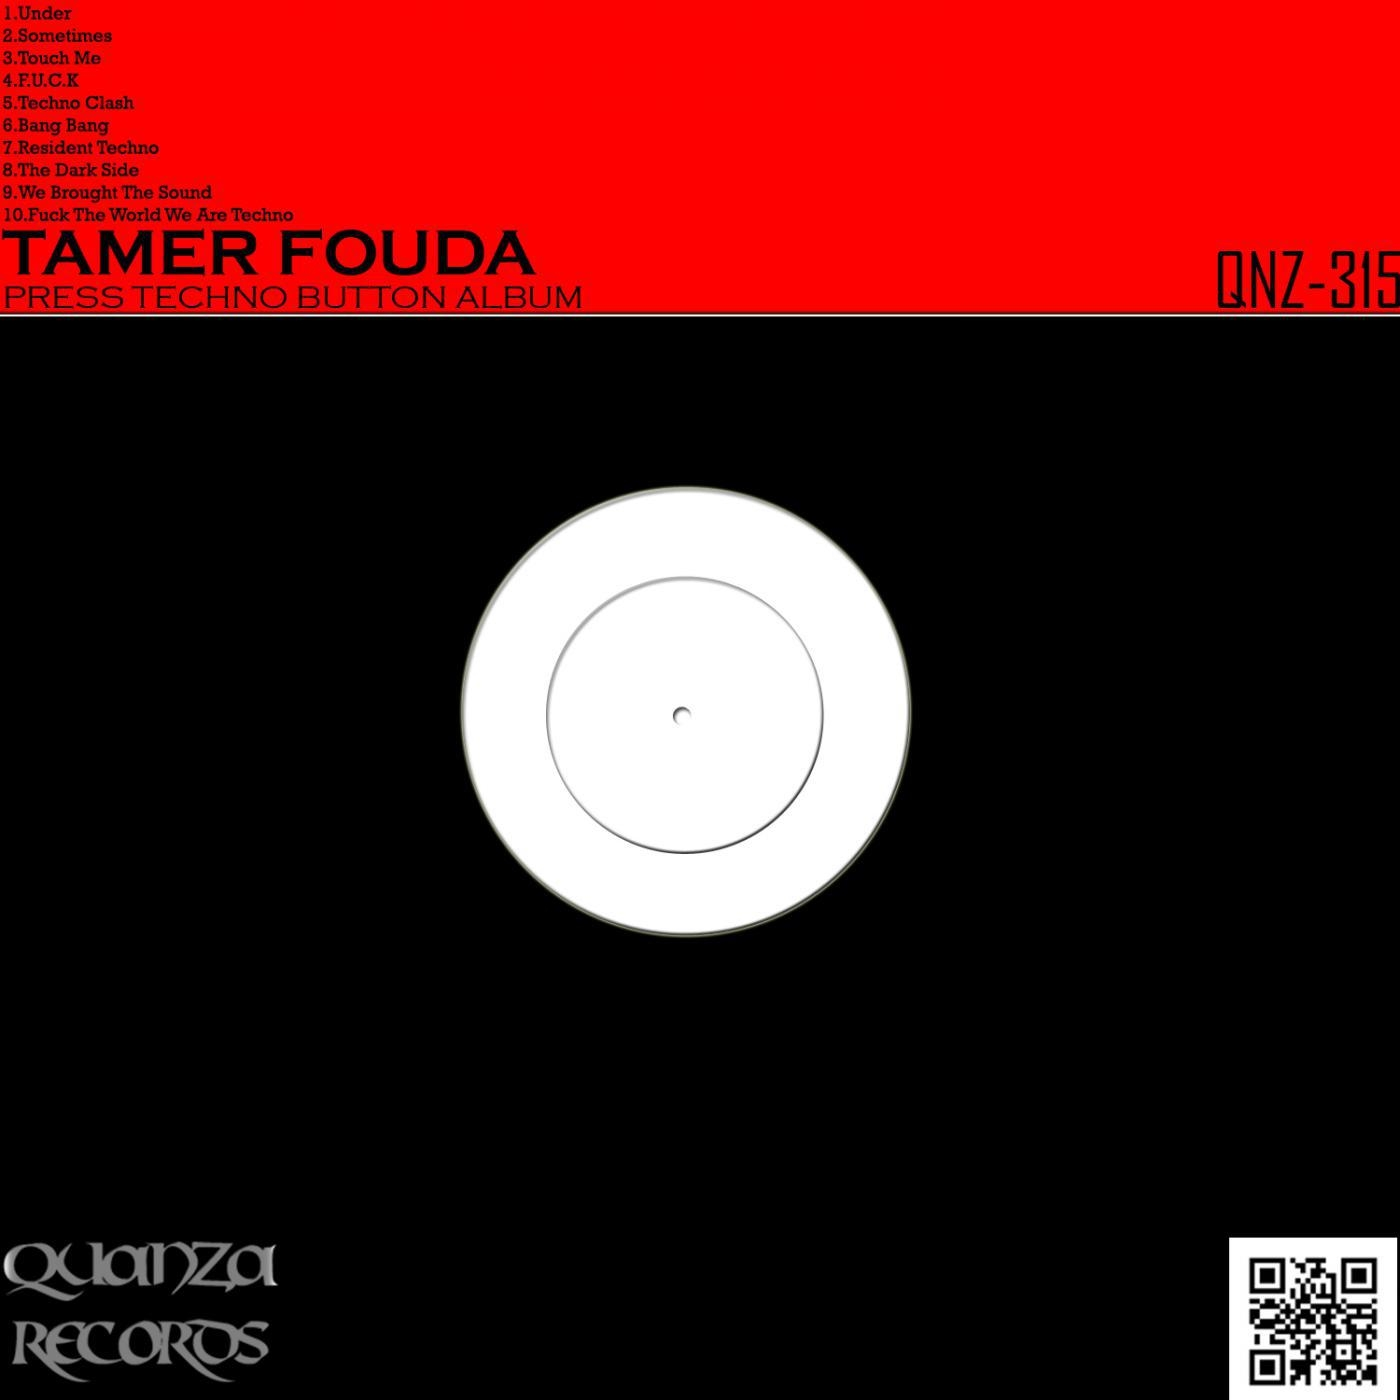 Tamer Fouda - The Dark Side (Original Mix)